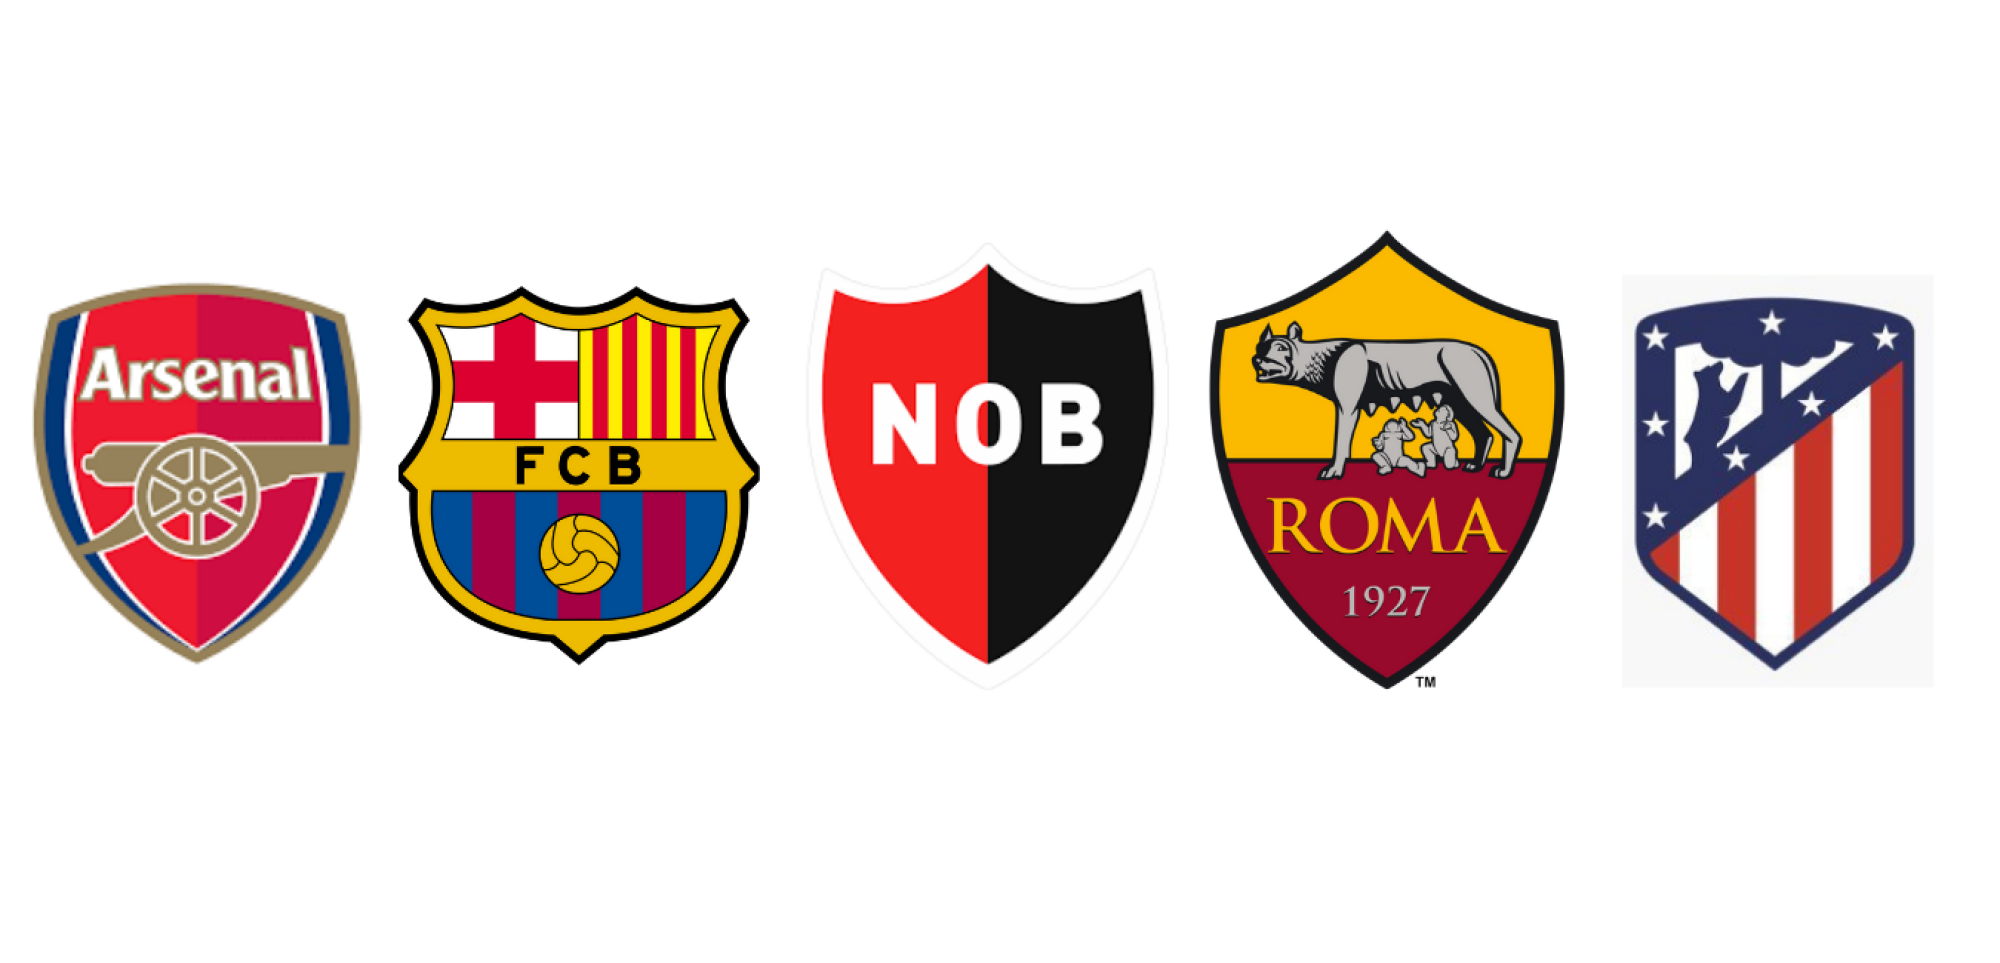 Football clubs and how they got their nicknames!